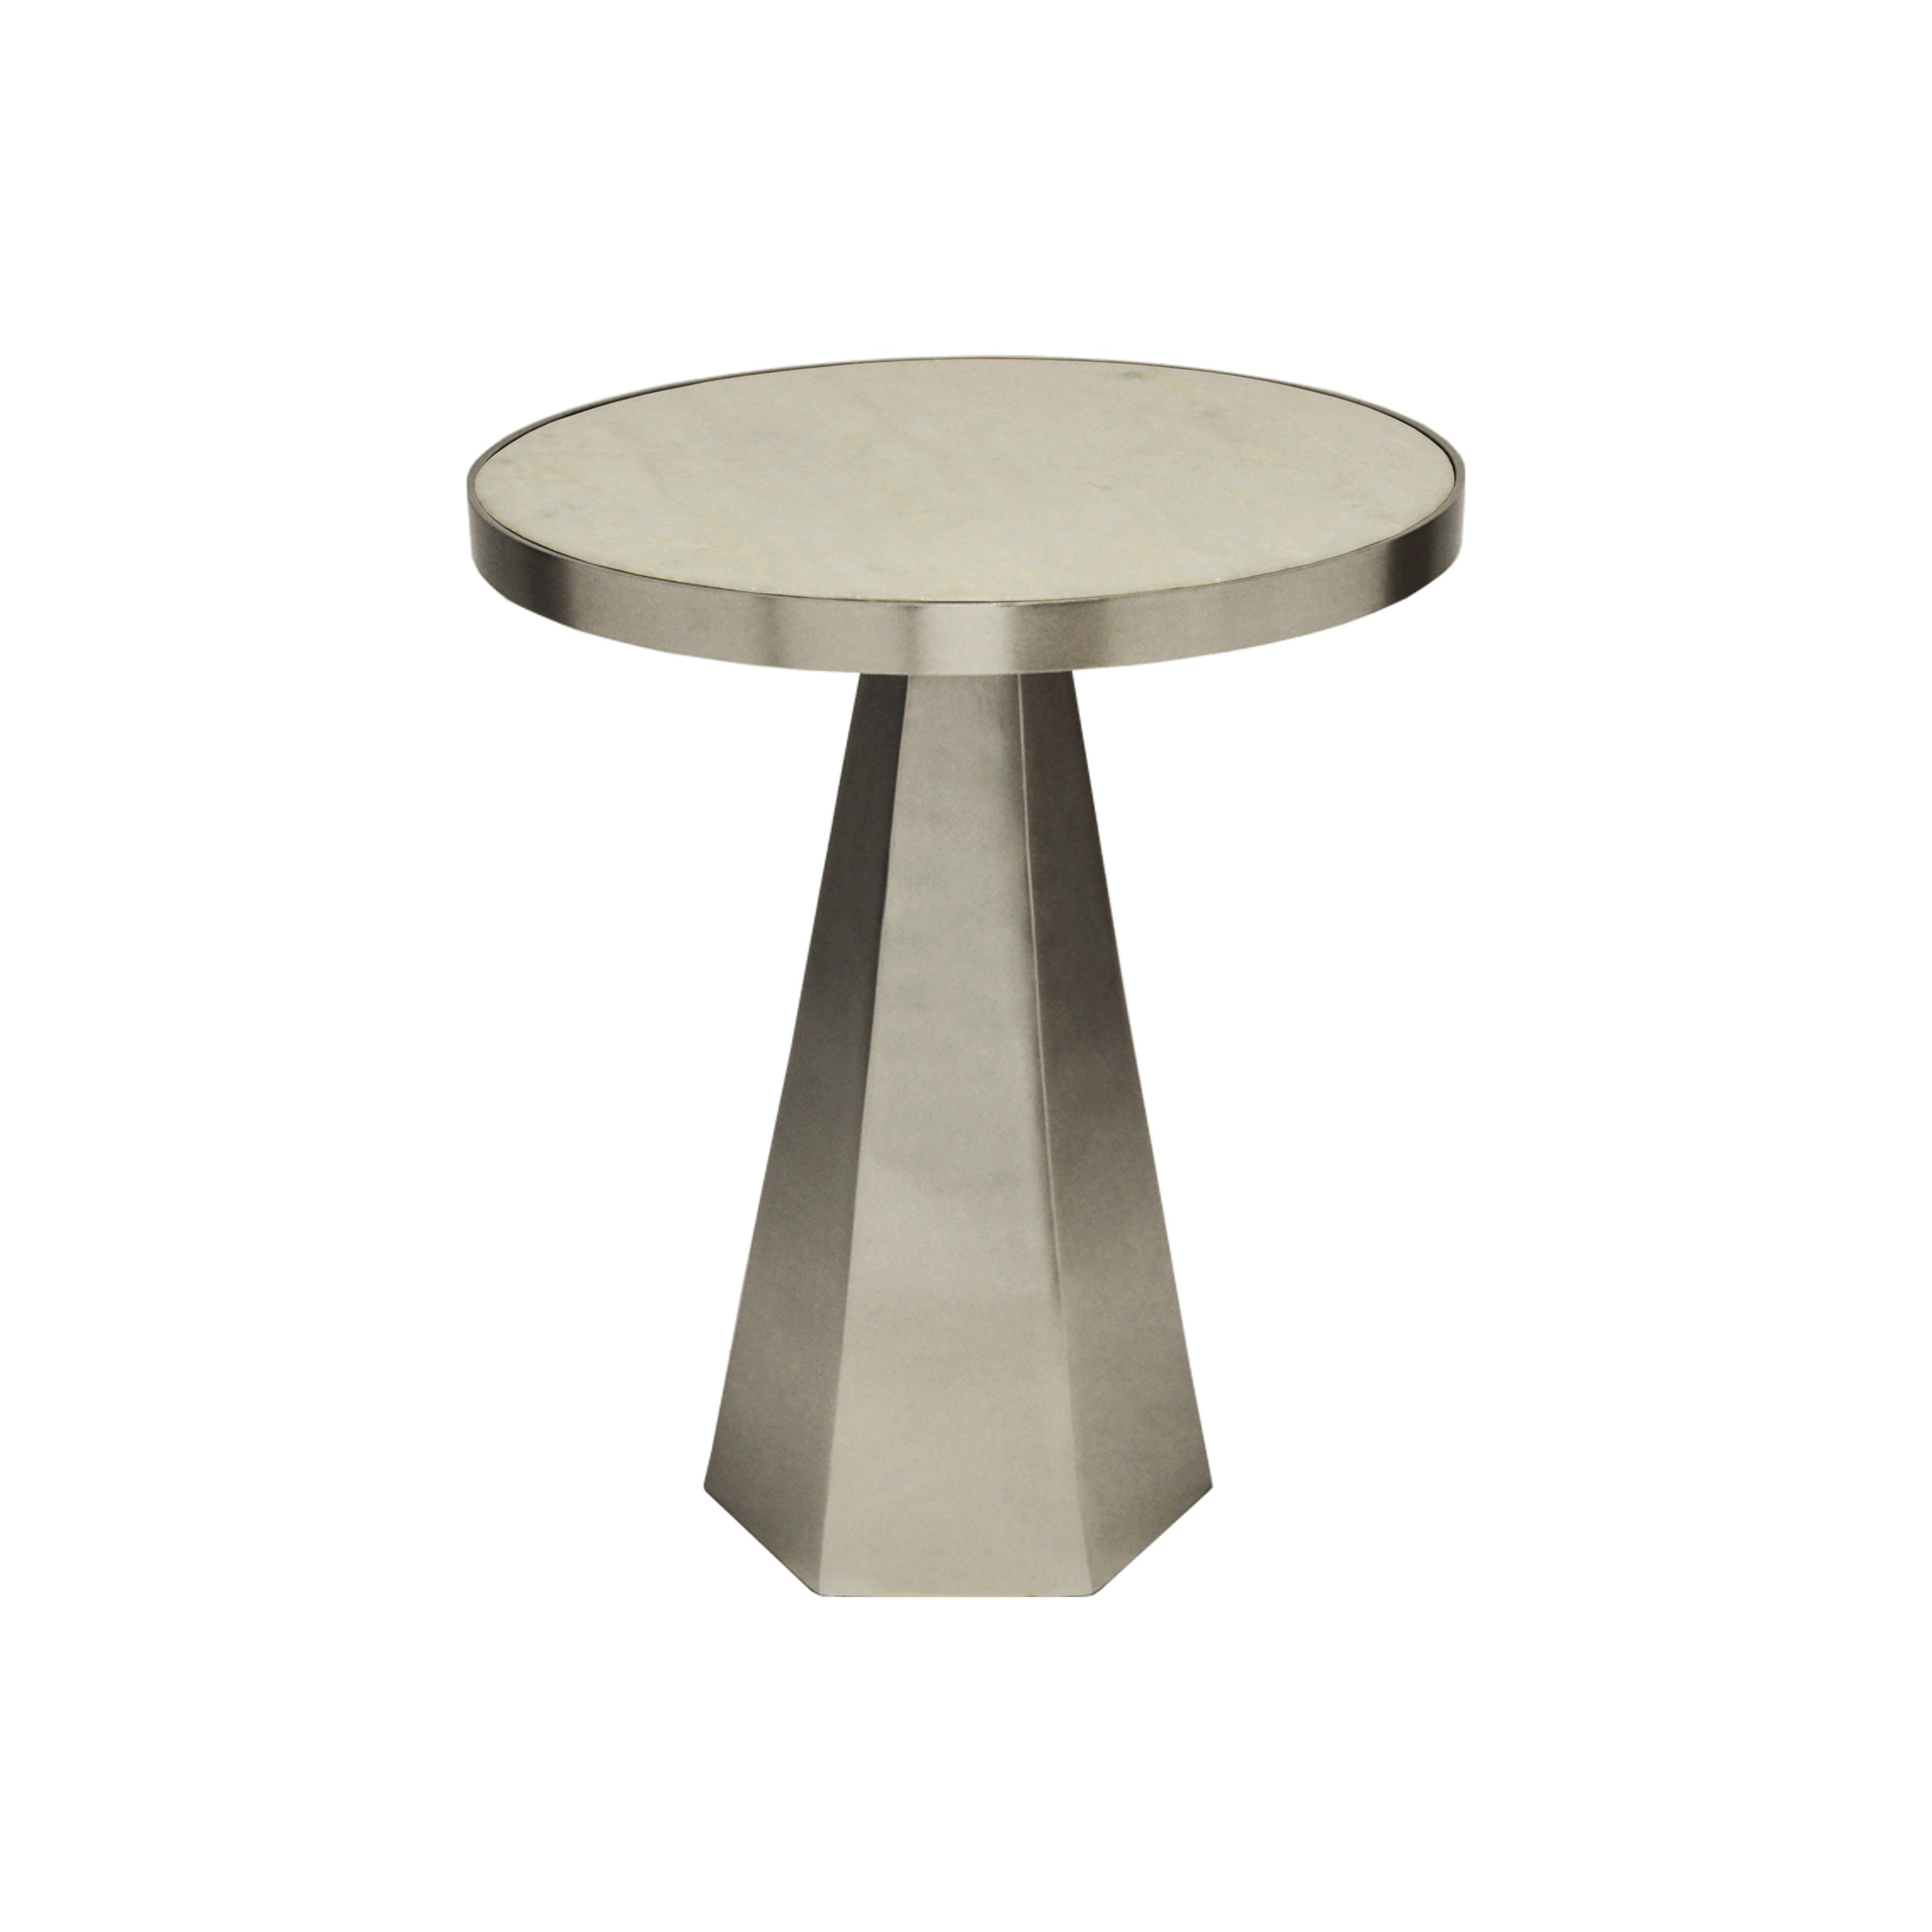 Woodrow Nickel Side Table with White Marble Top